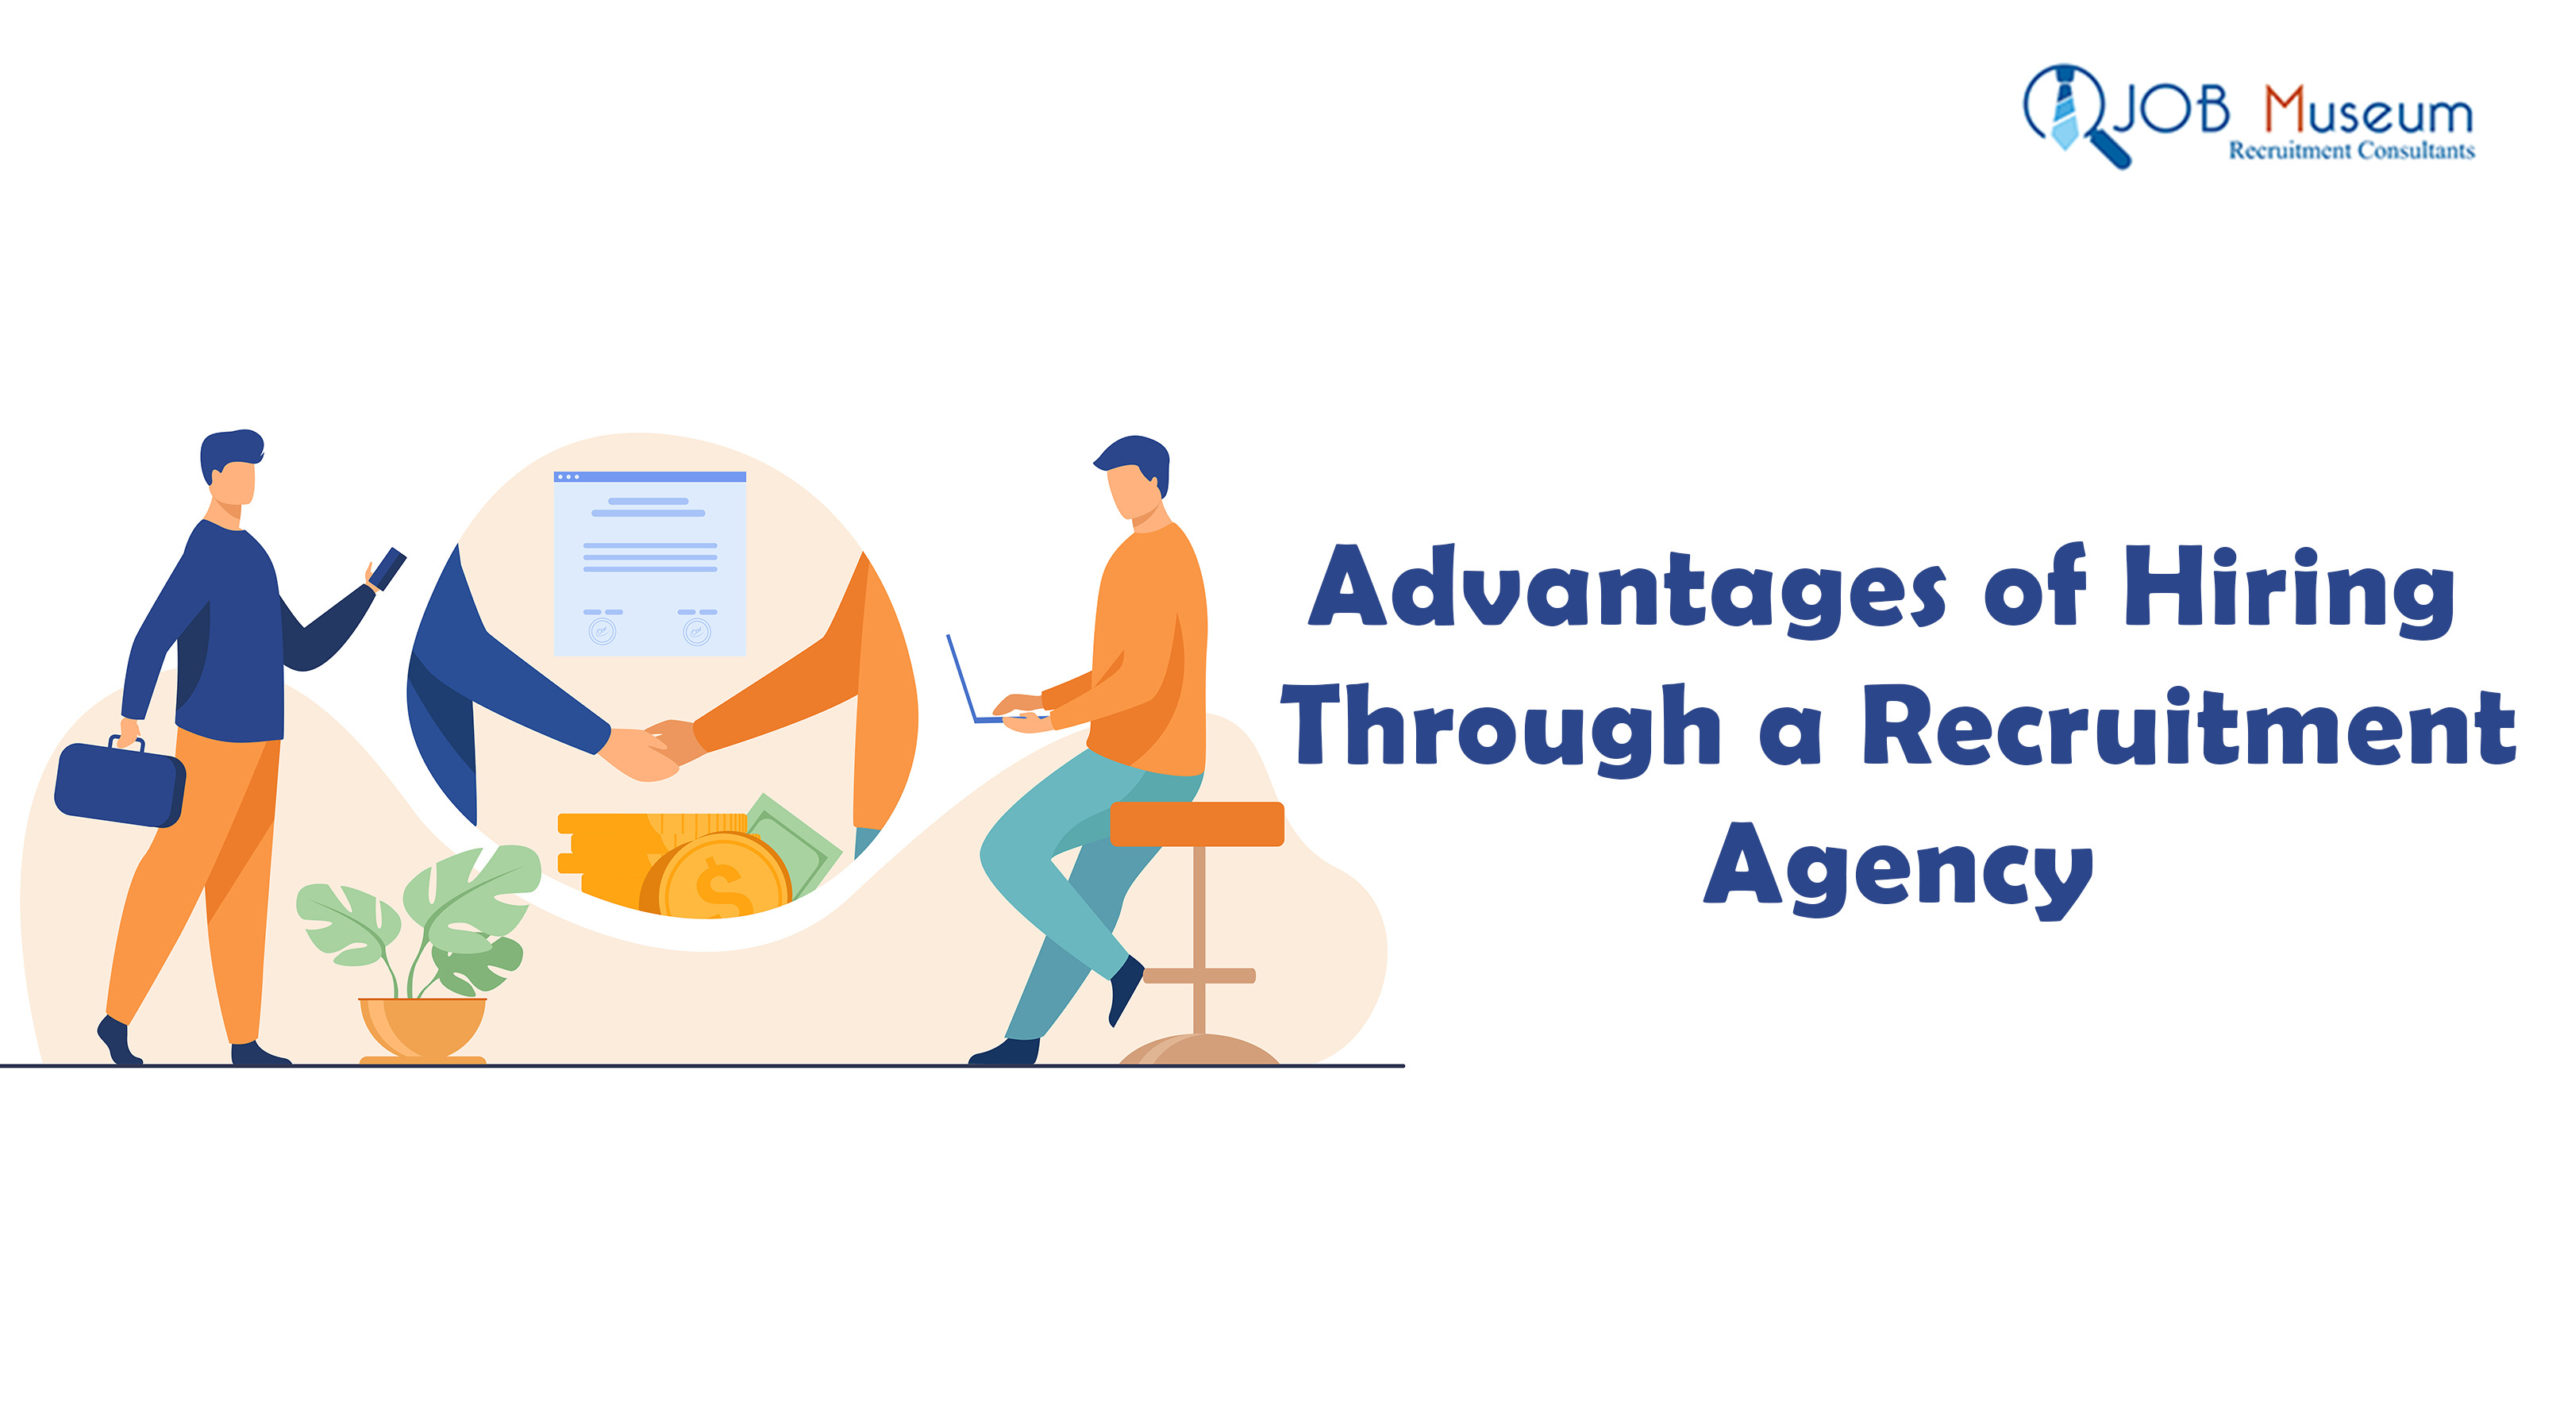 Advantages of Hiring Through a Recruitment Agency